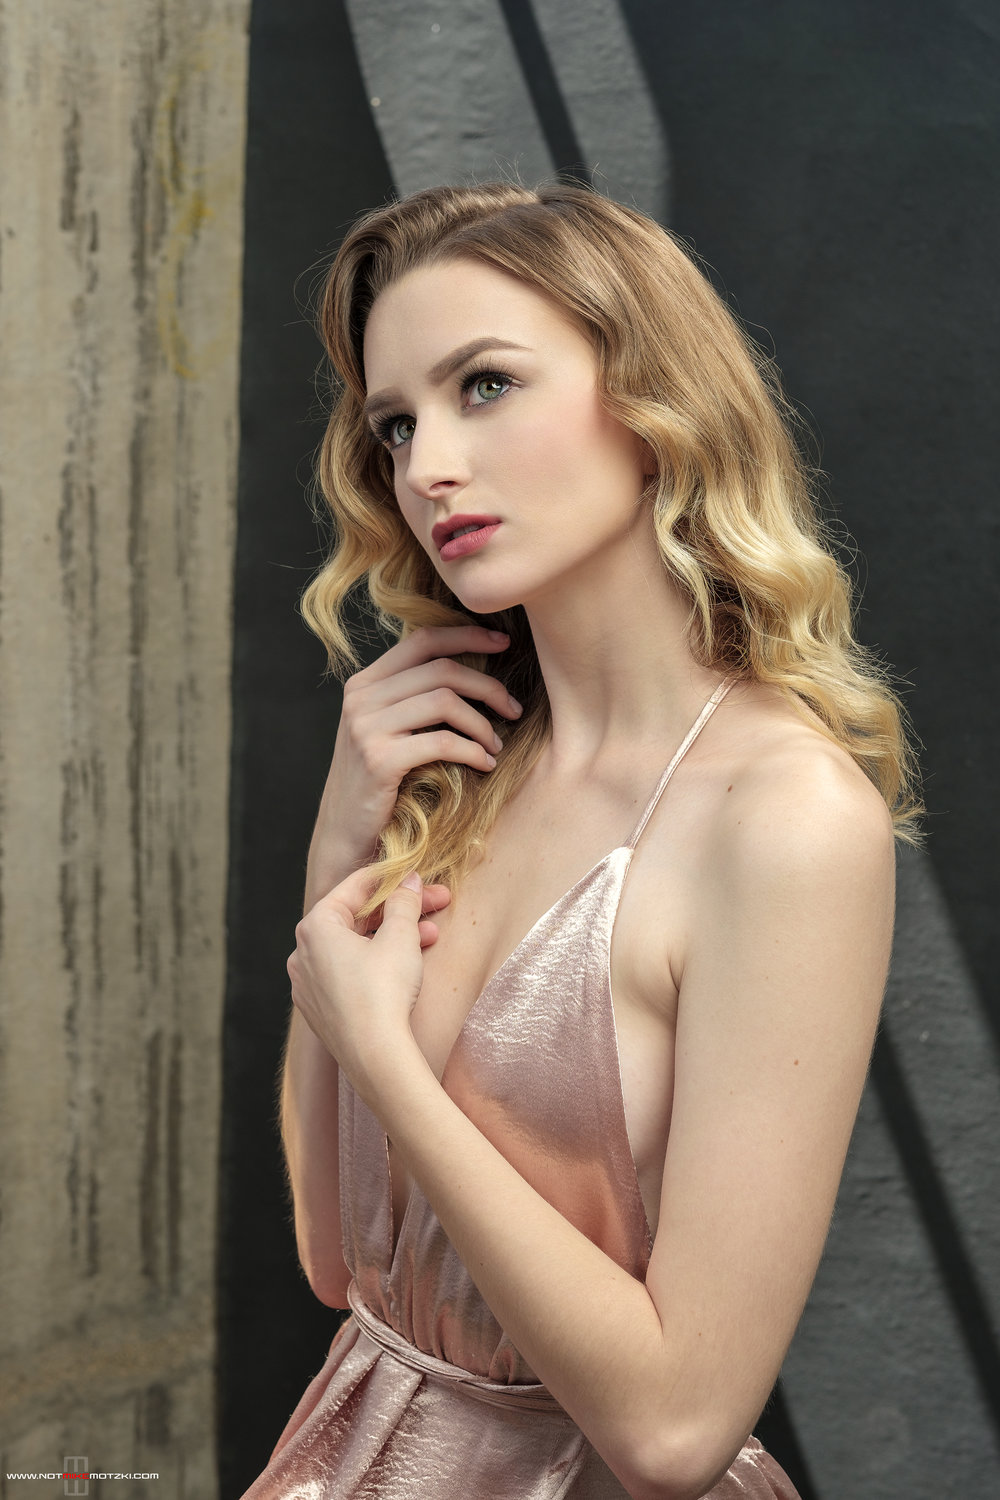 san diego fashion beauty and glamour photographer Mike Mozki takes us behind the scenes with his shoot with model Zoe Birdsell and makeup artists Natalie Dixon